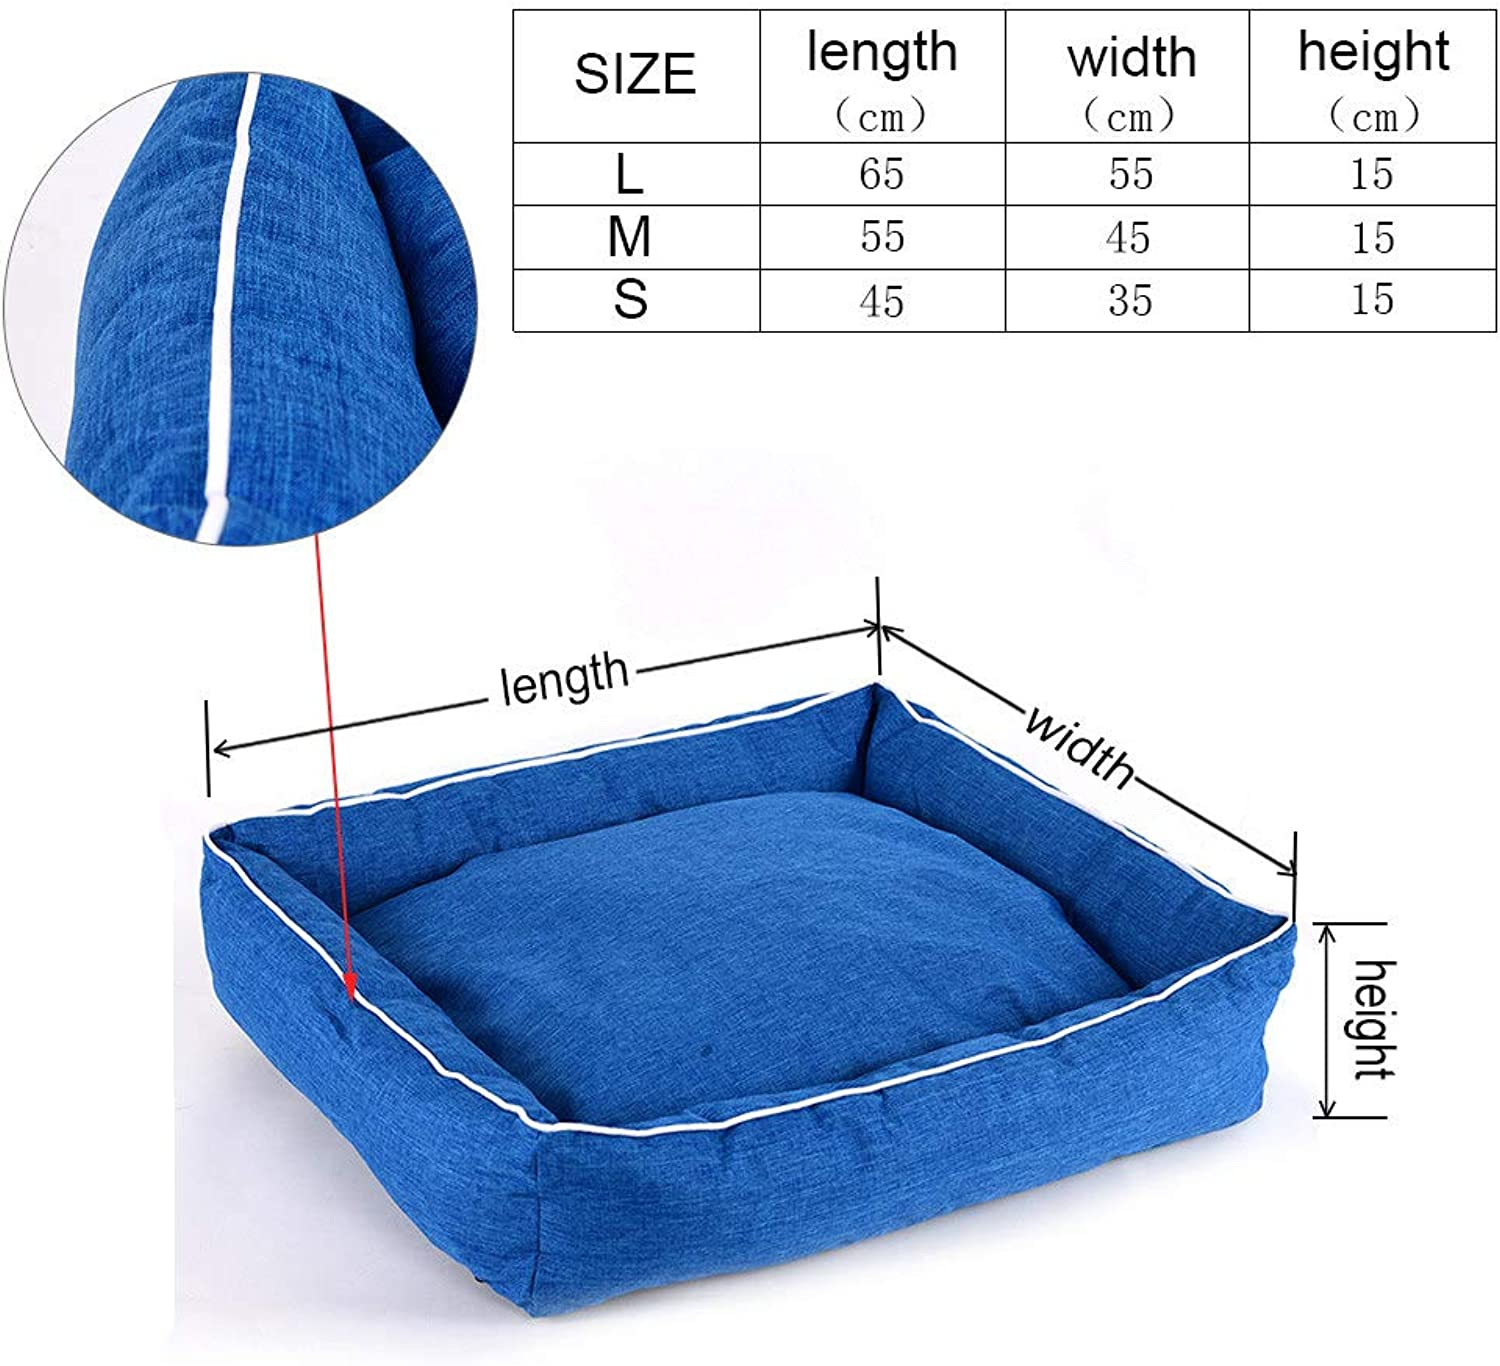 Cookisn Pet Bed for Dogs Cats Cotton Bench for Puppy Bed for Small Medium Dogs House Warm Lounger Mats for Dogs Bed Pet Cushion COO050 bluee S 45 x 35 x 15cm